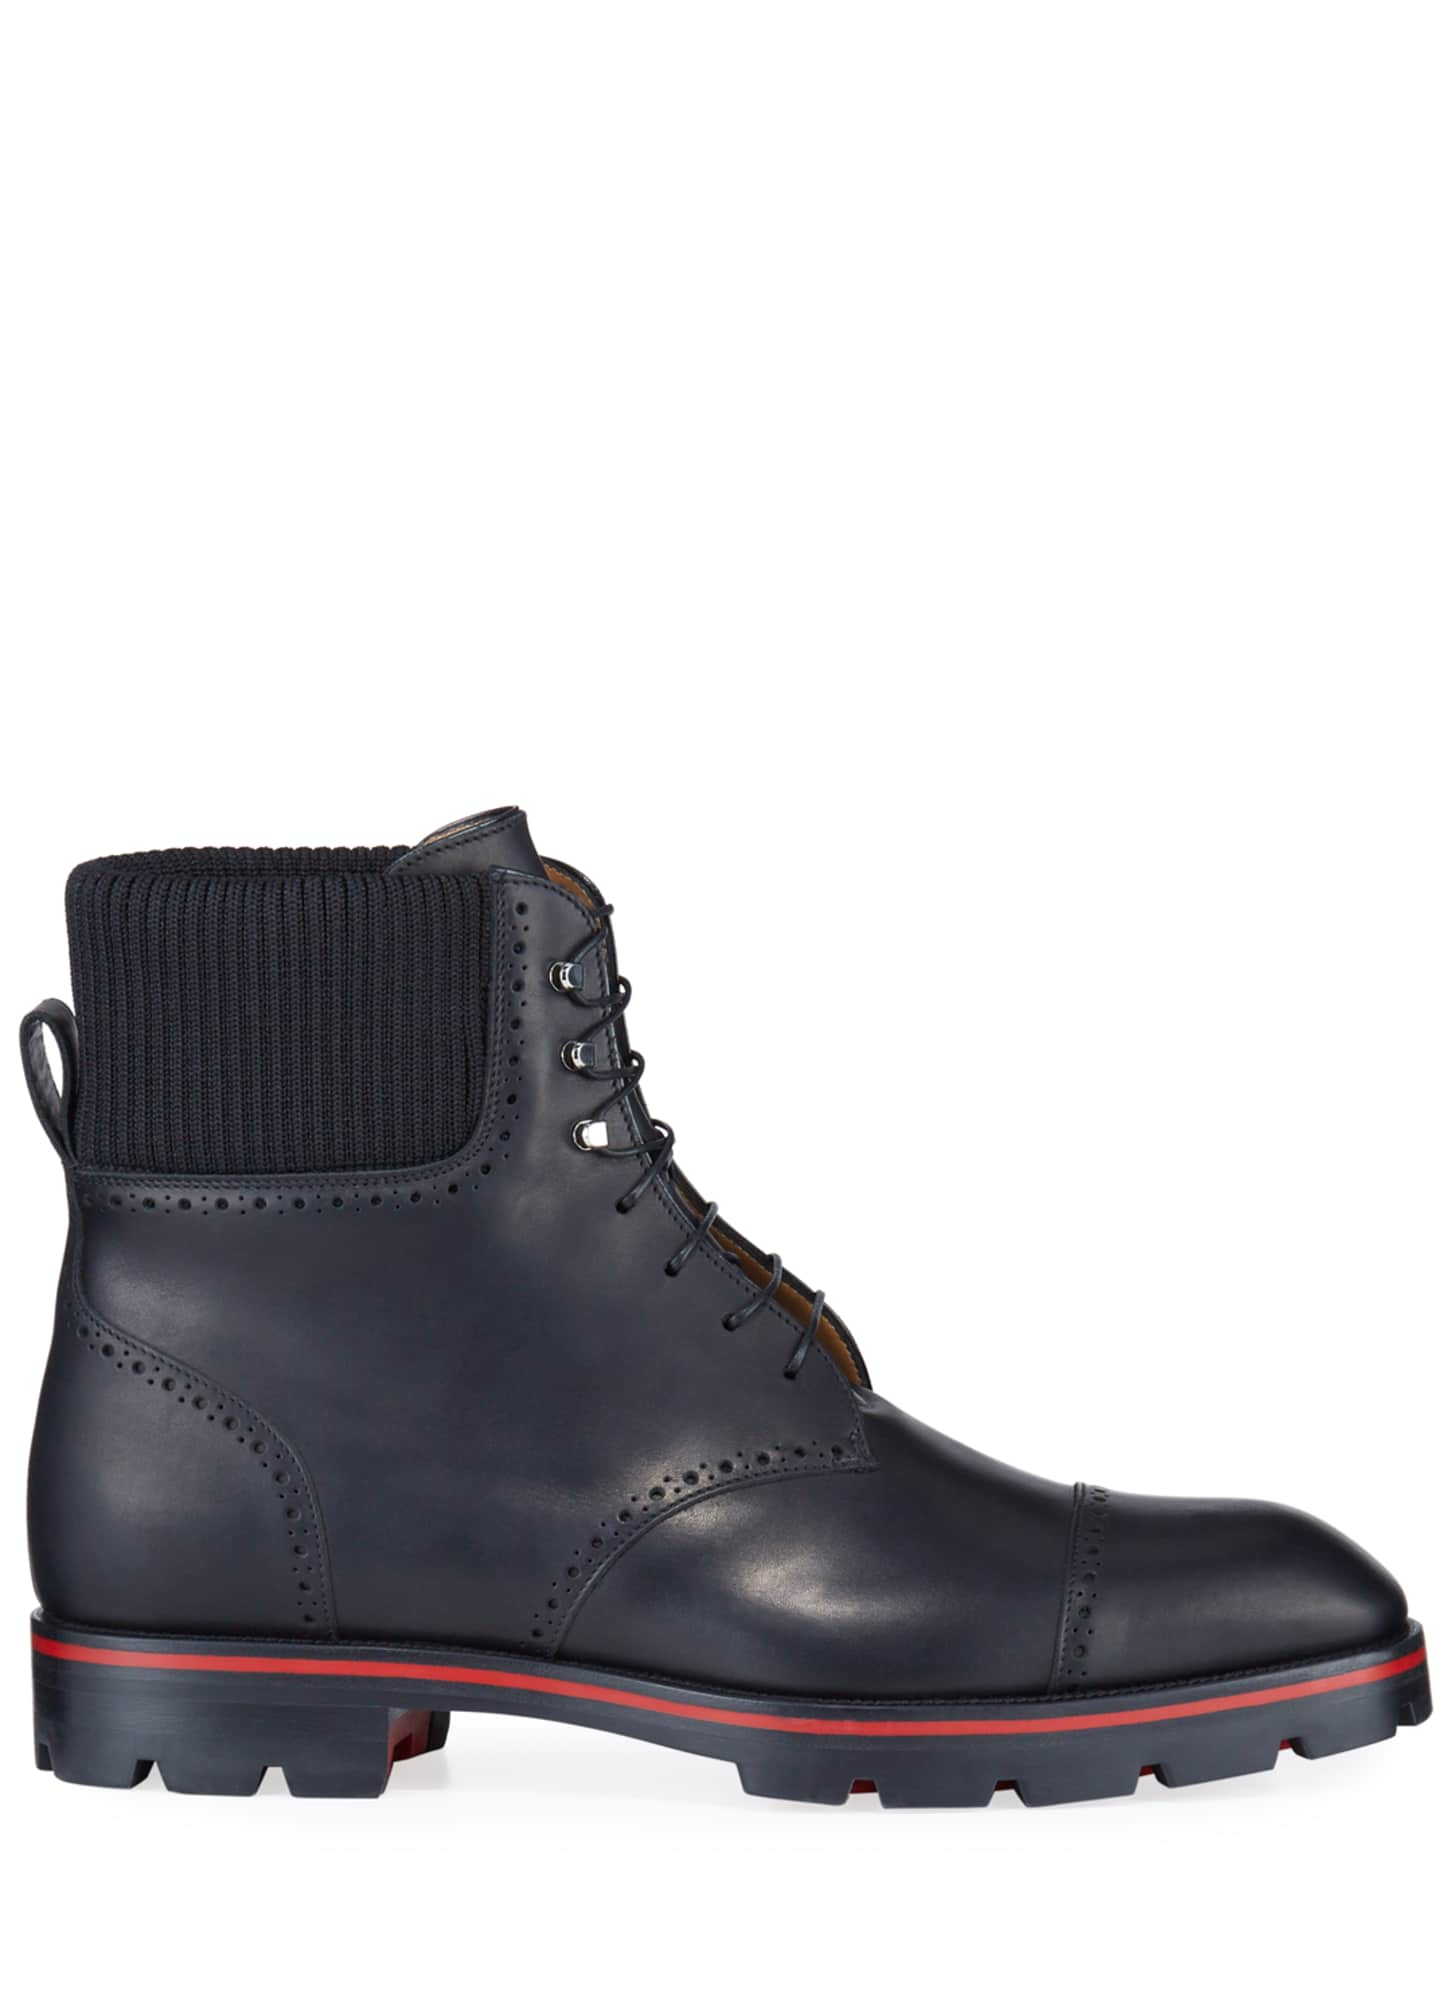 Image 3 of 4: Men's Citycroc Red Sole Brogue Leather Boots